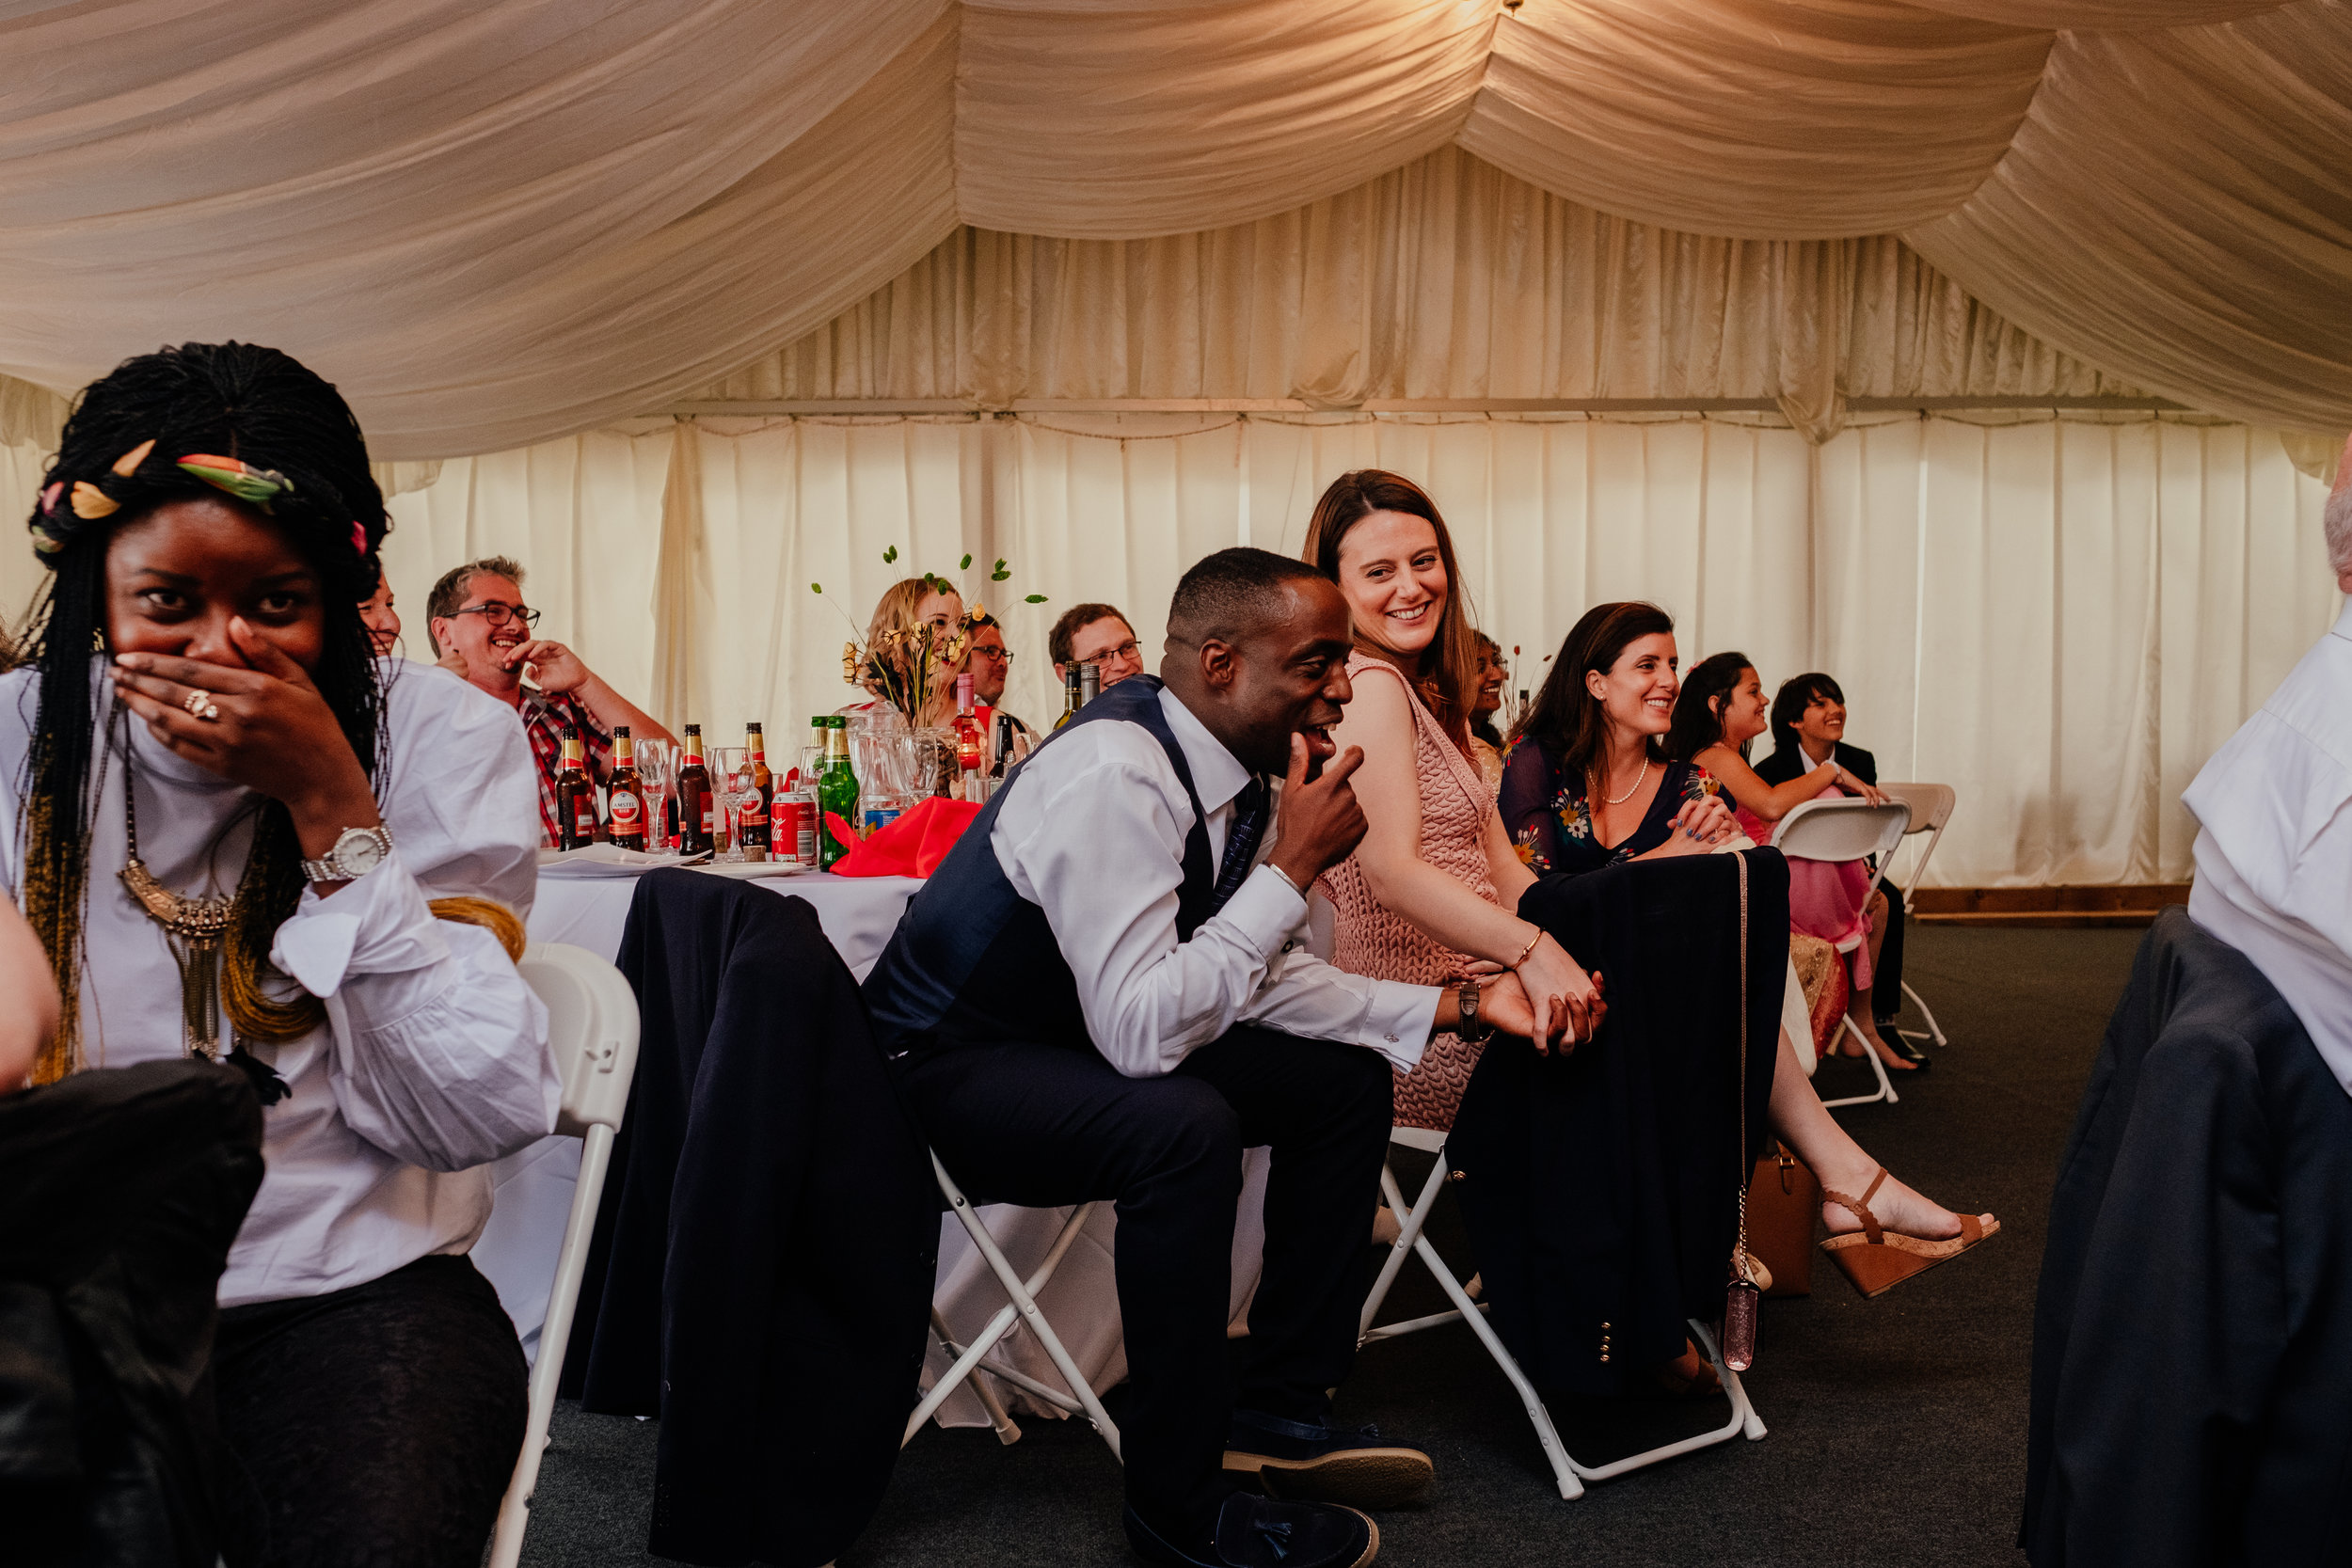 Wedding guests laughing during wedding reception